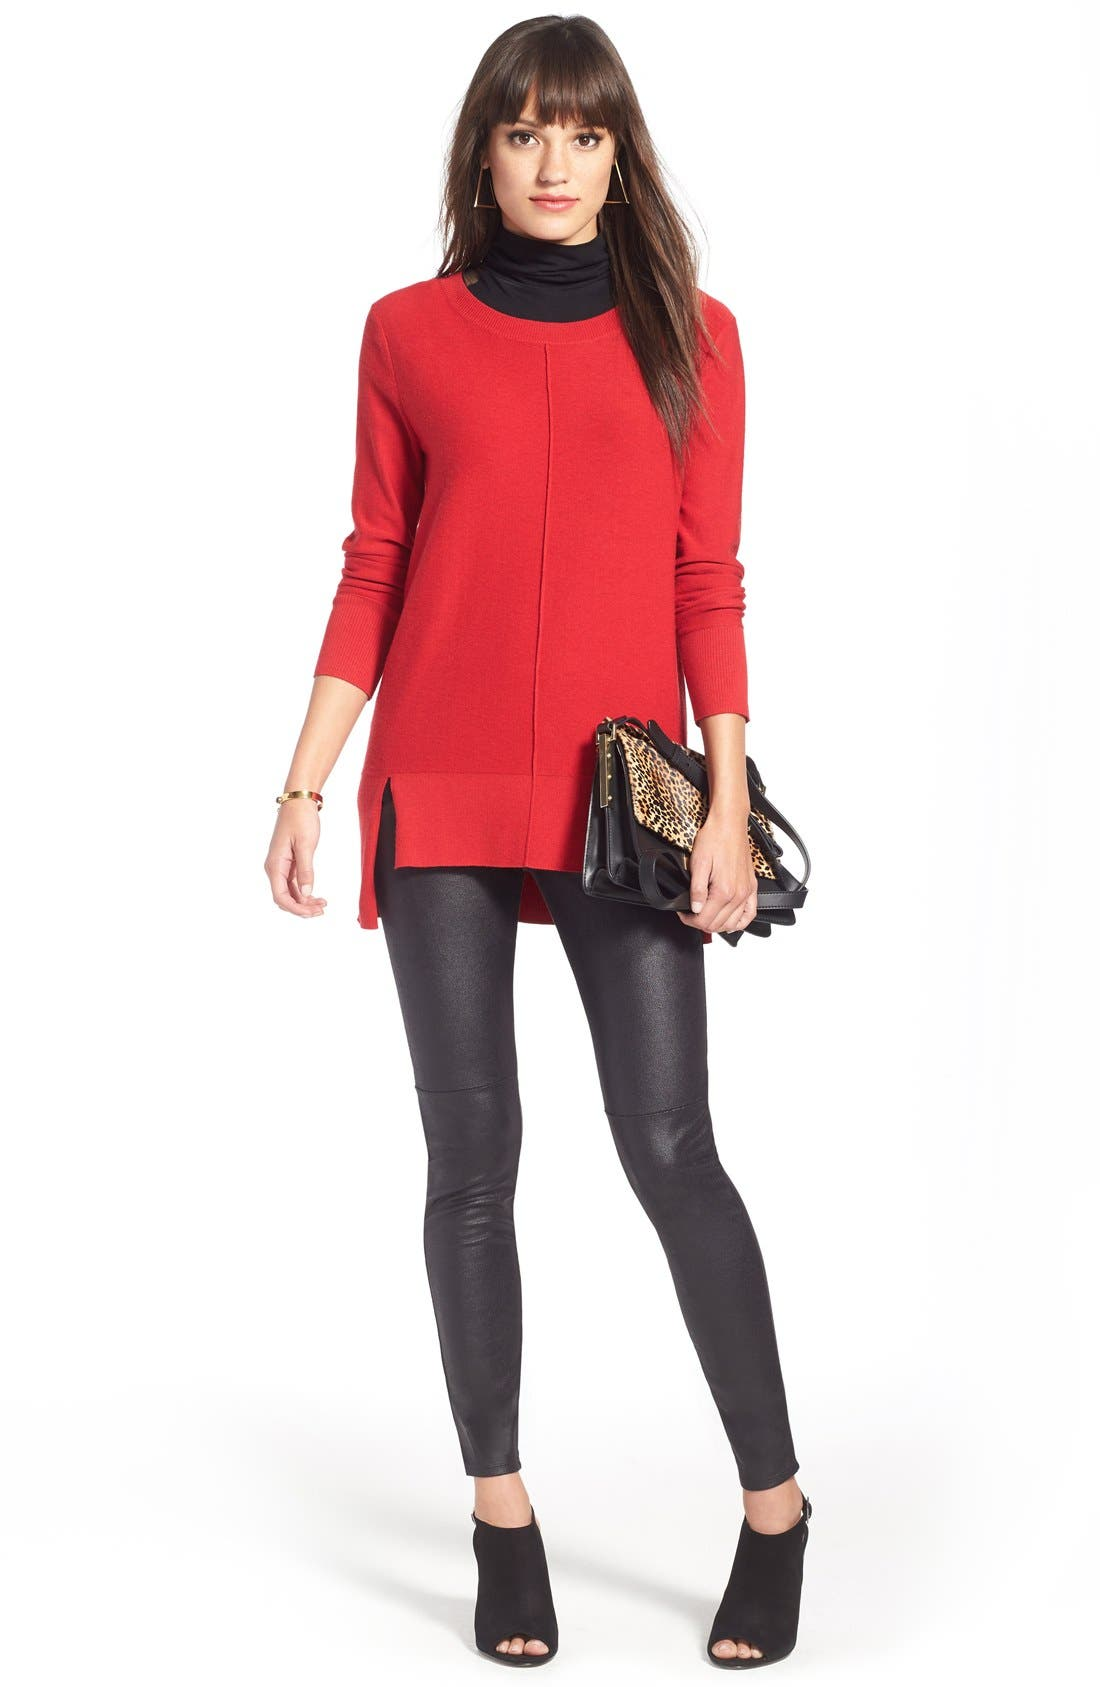 Faux Leather Leggings,                             Alternate thumbnail 11, color,                             001